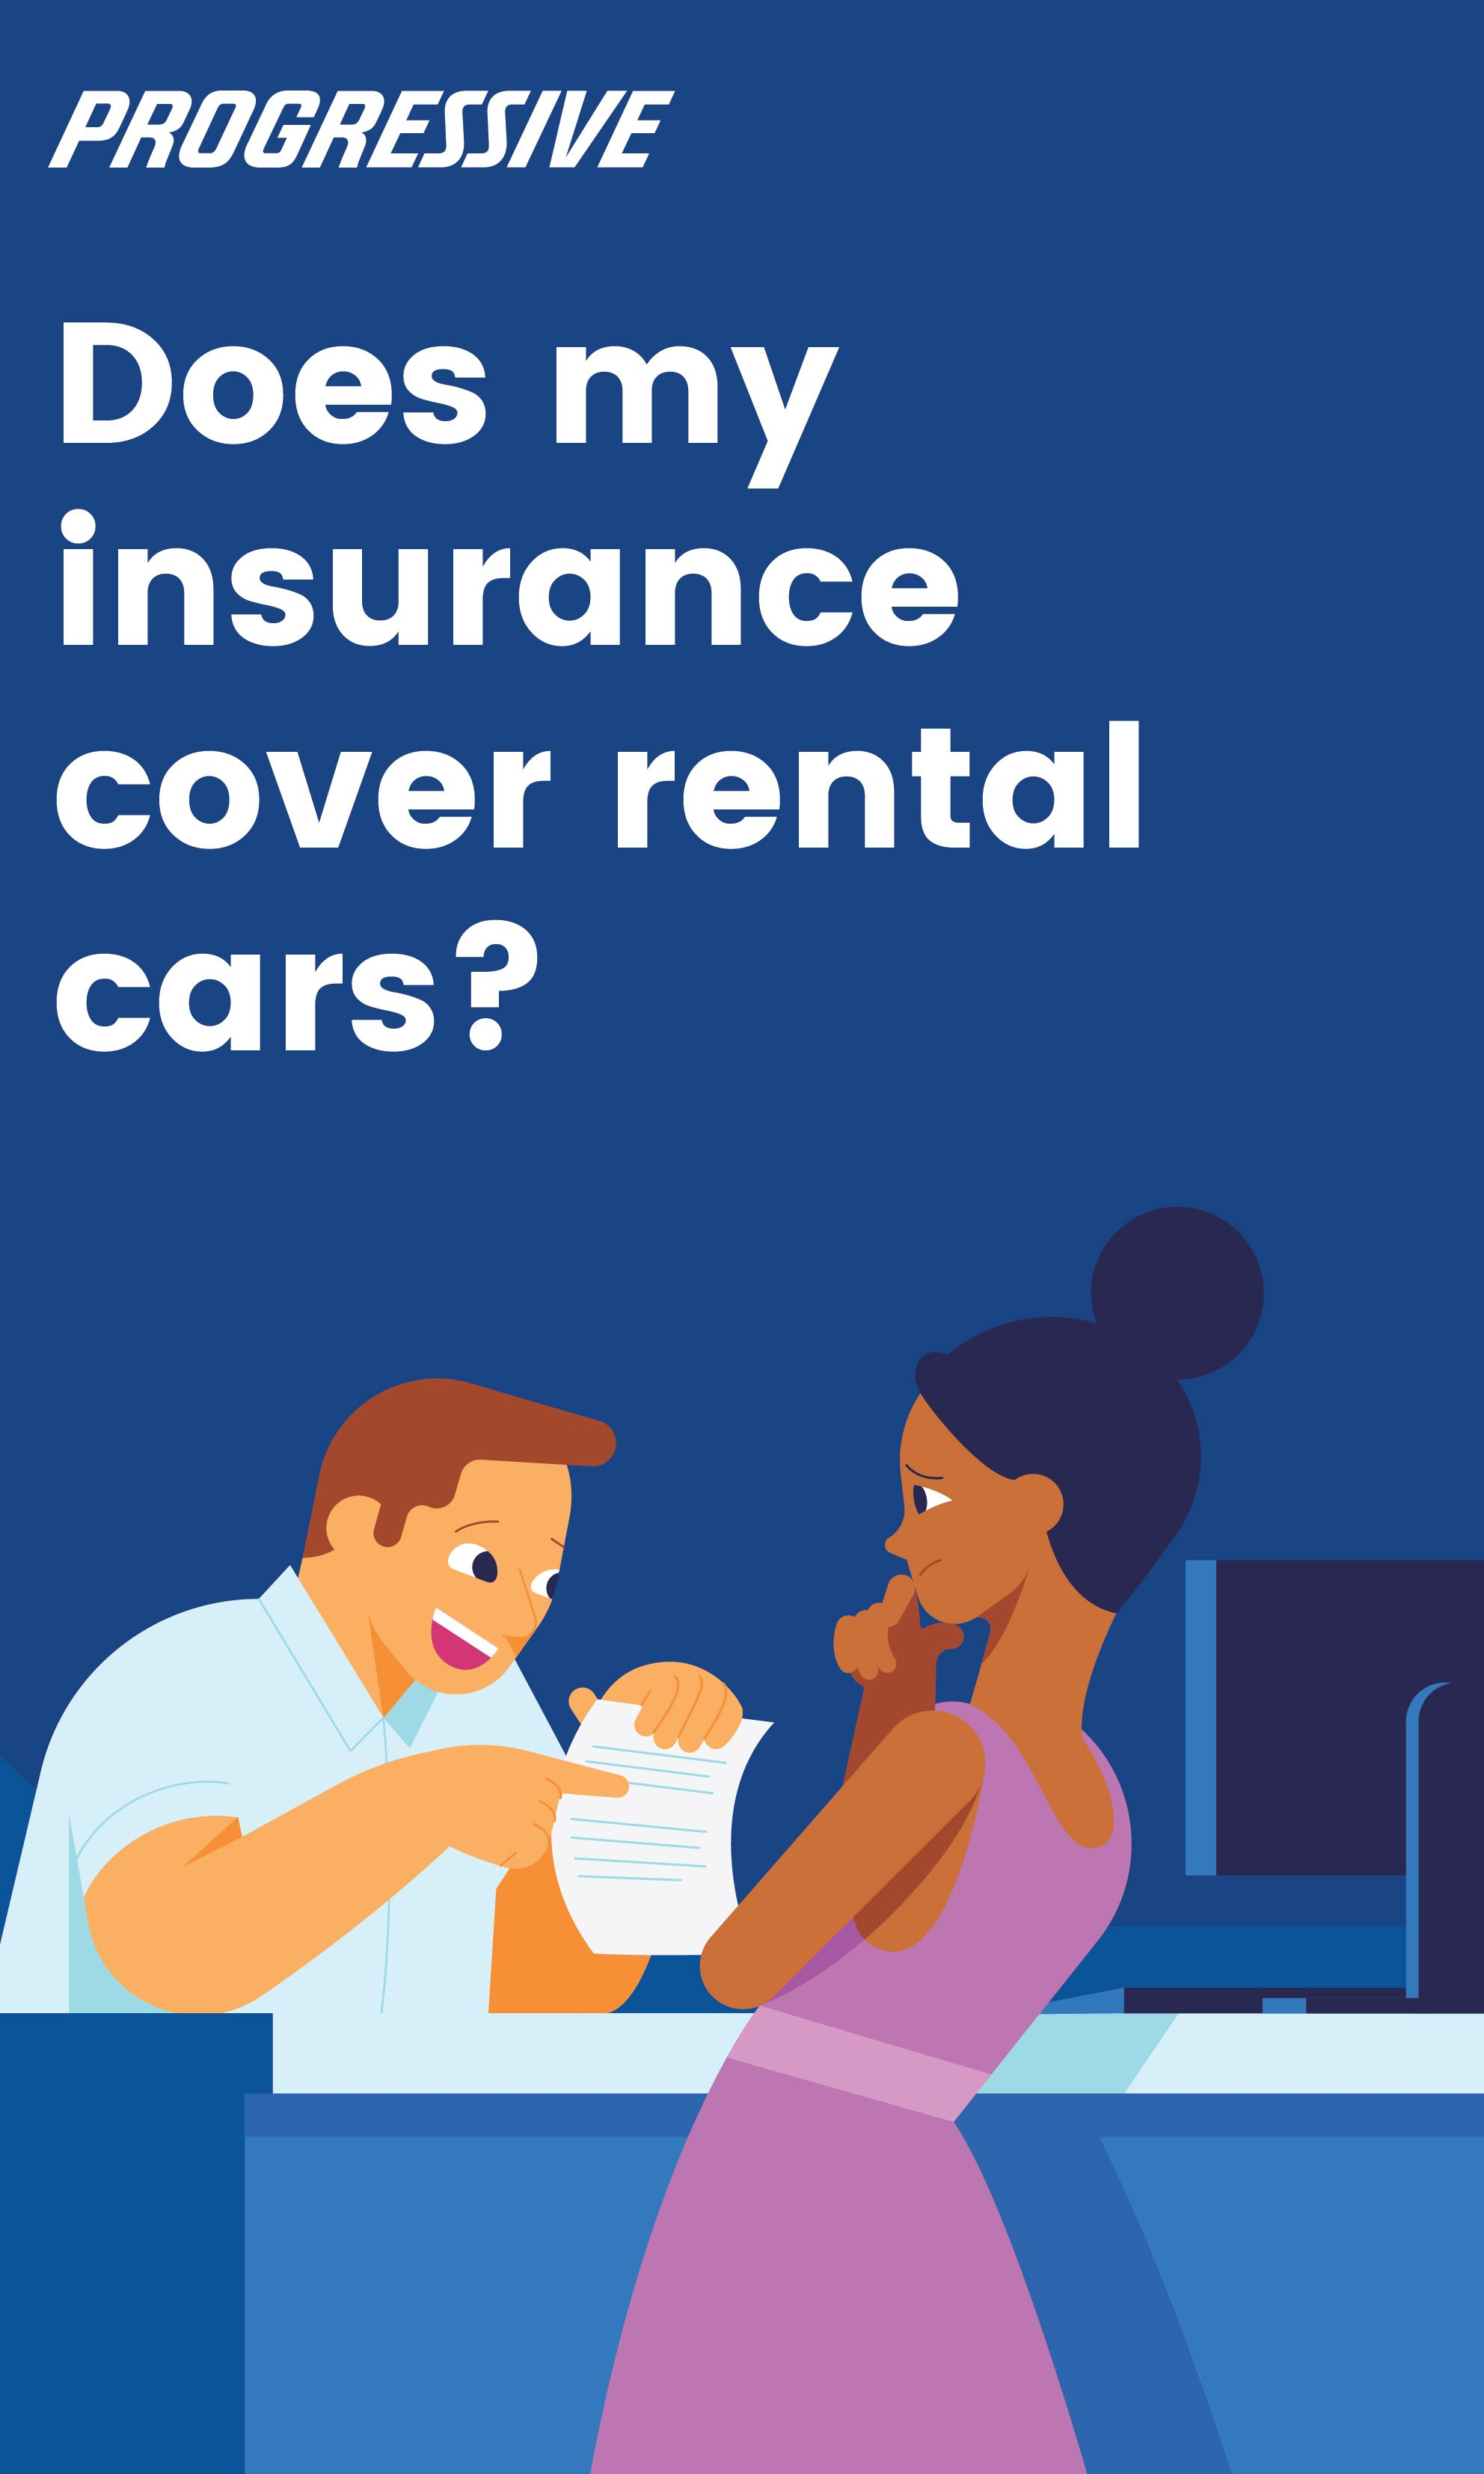 Rental Car Insurance If You Have Questions Check Progressive